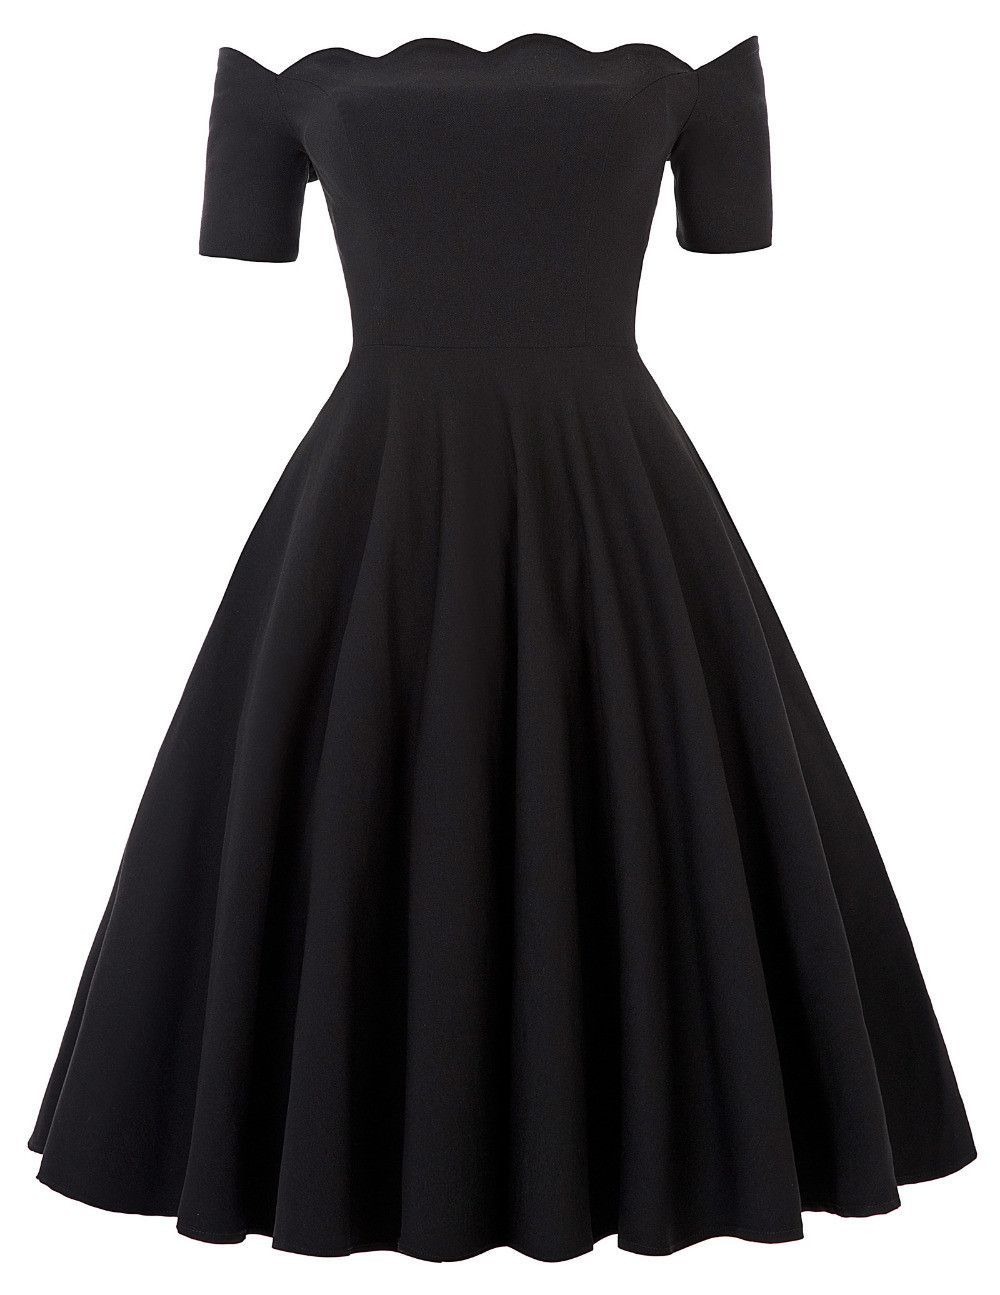 802f045ea4 Off Shoulder Dress Audrey Hepburn Vestidos Vintage 50s 60s Rockabilly  Casual Robe Pin Up Swing Black Party Dresses With Sleeves